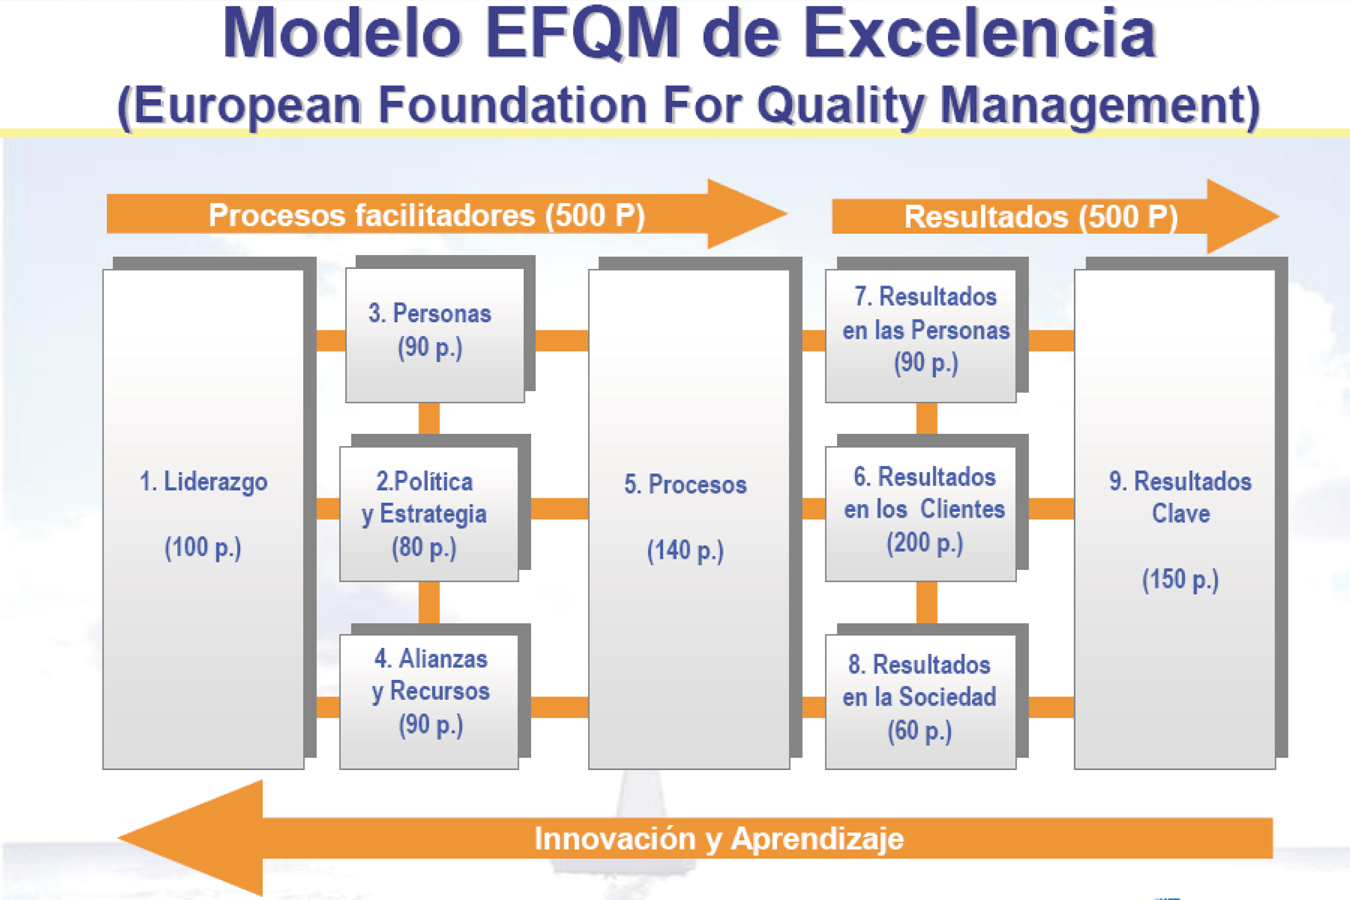 efqm excellence model 2010 The efqm excellence award is a transnational quality award that recognises european businesses with excellent and sustainable results across all areas of the efqm excellence model.